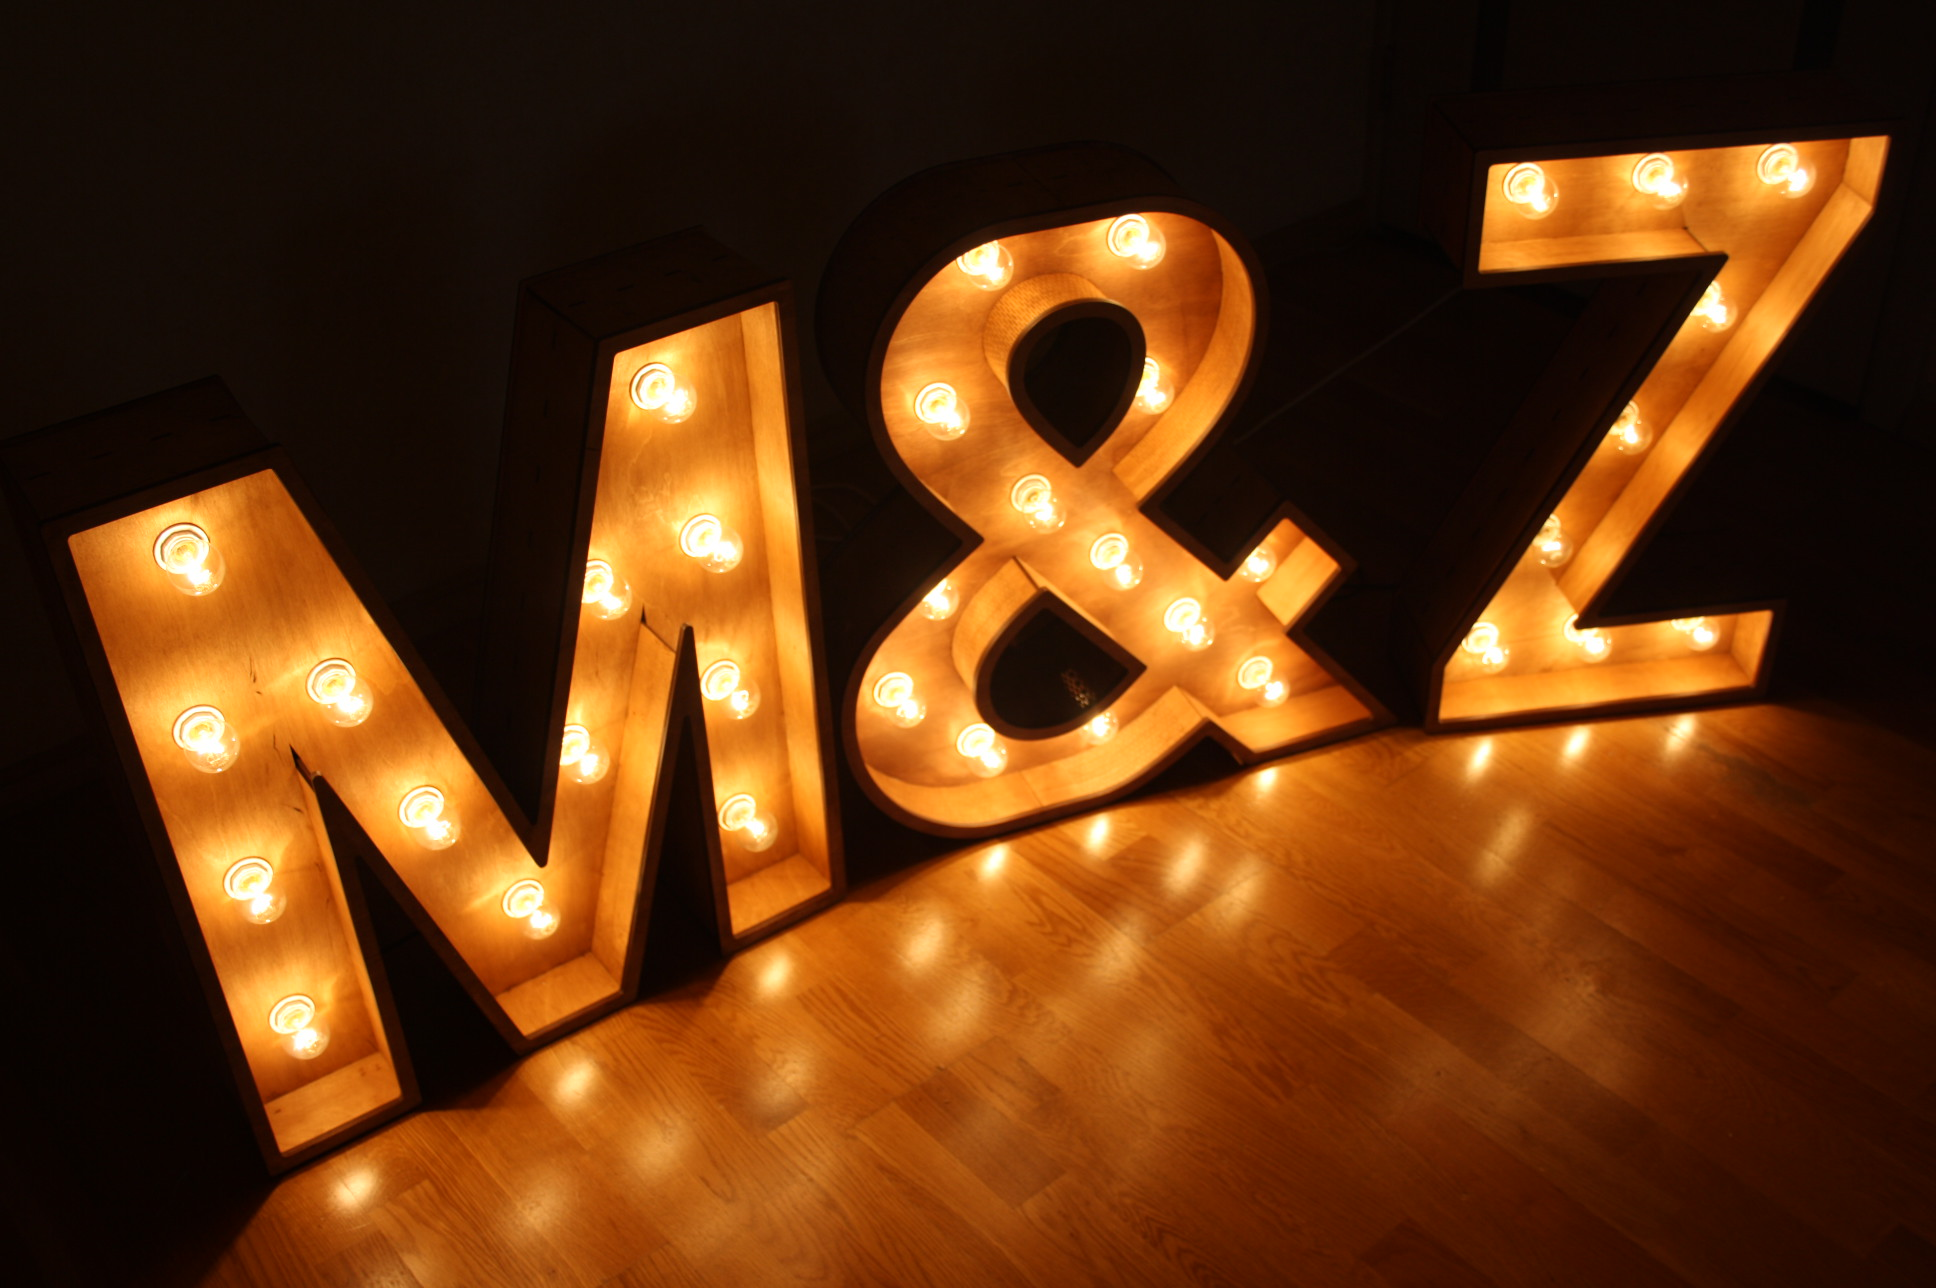 Wooden Letters With Light Bulbs They Can Be Used For Decoration For The Interior Decoration For The Ho Light Letters Light Up Signs Barn Wedding Decorations